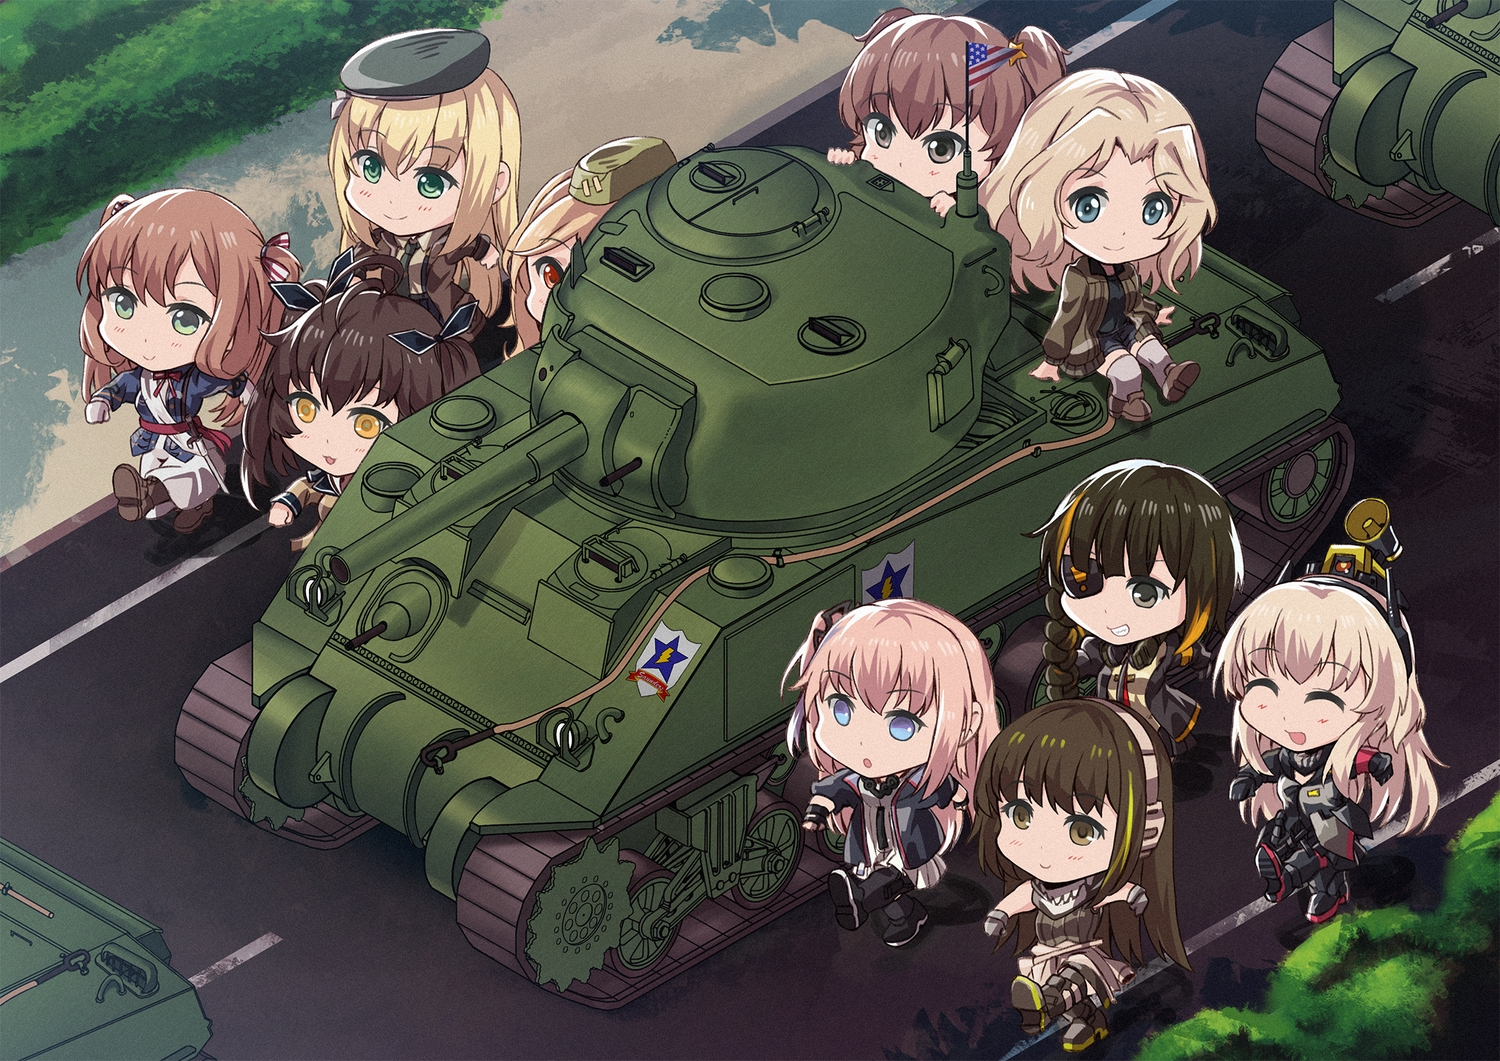 alisa_(girls_und_panzer) anthropomorphism aqua_eyes blonde_hair boots brown_eyes brown_hair chibi crossover eyepatch girls_frontline girls_und_panzer gloves gray_eyes group hat headphones kay_(girls_und_panzer) long_hair m14_(girls_frontline) m16a1_(girls_frontline) m1_garand_(girls_frontline) m2hb_(girls_frontline) m4a1_(girls_frontline) m4_sopmod_ii_(girls_frontline) persocon93 pink_hair ponytail red_eyes ribbons ro635_(girls_frontline) robot short_hair springfield_(girls_frontline) st_ar-15_(girls_frontline) stockings twintails uniform yellow_eyes